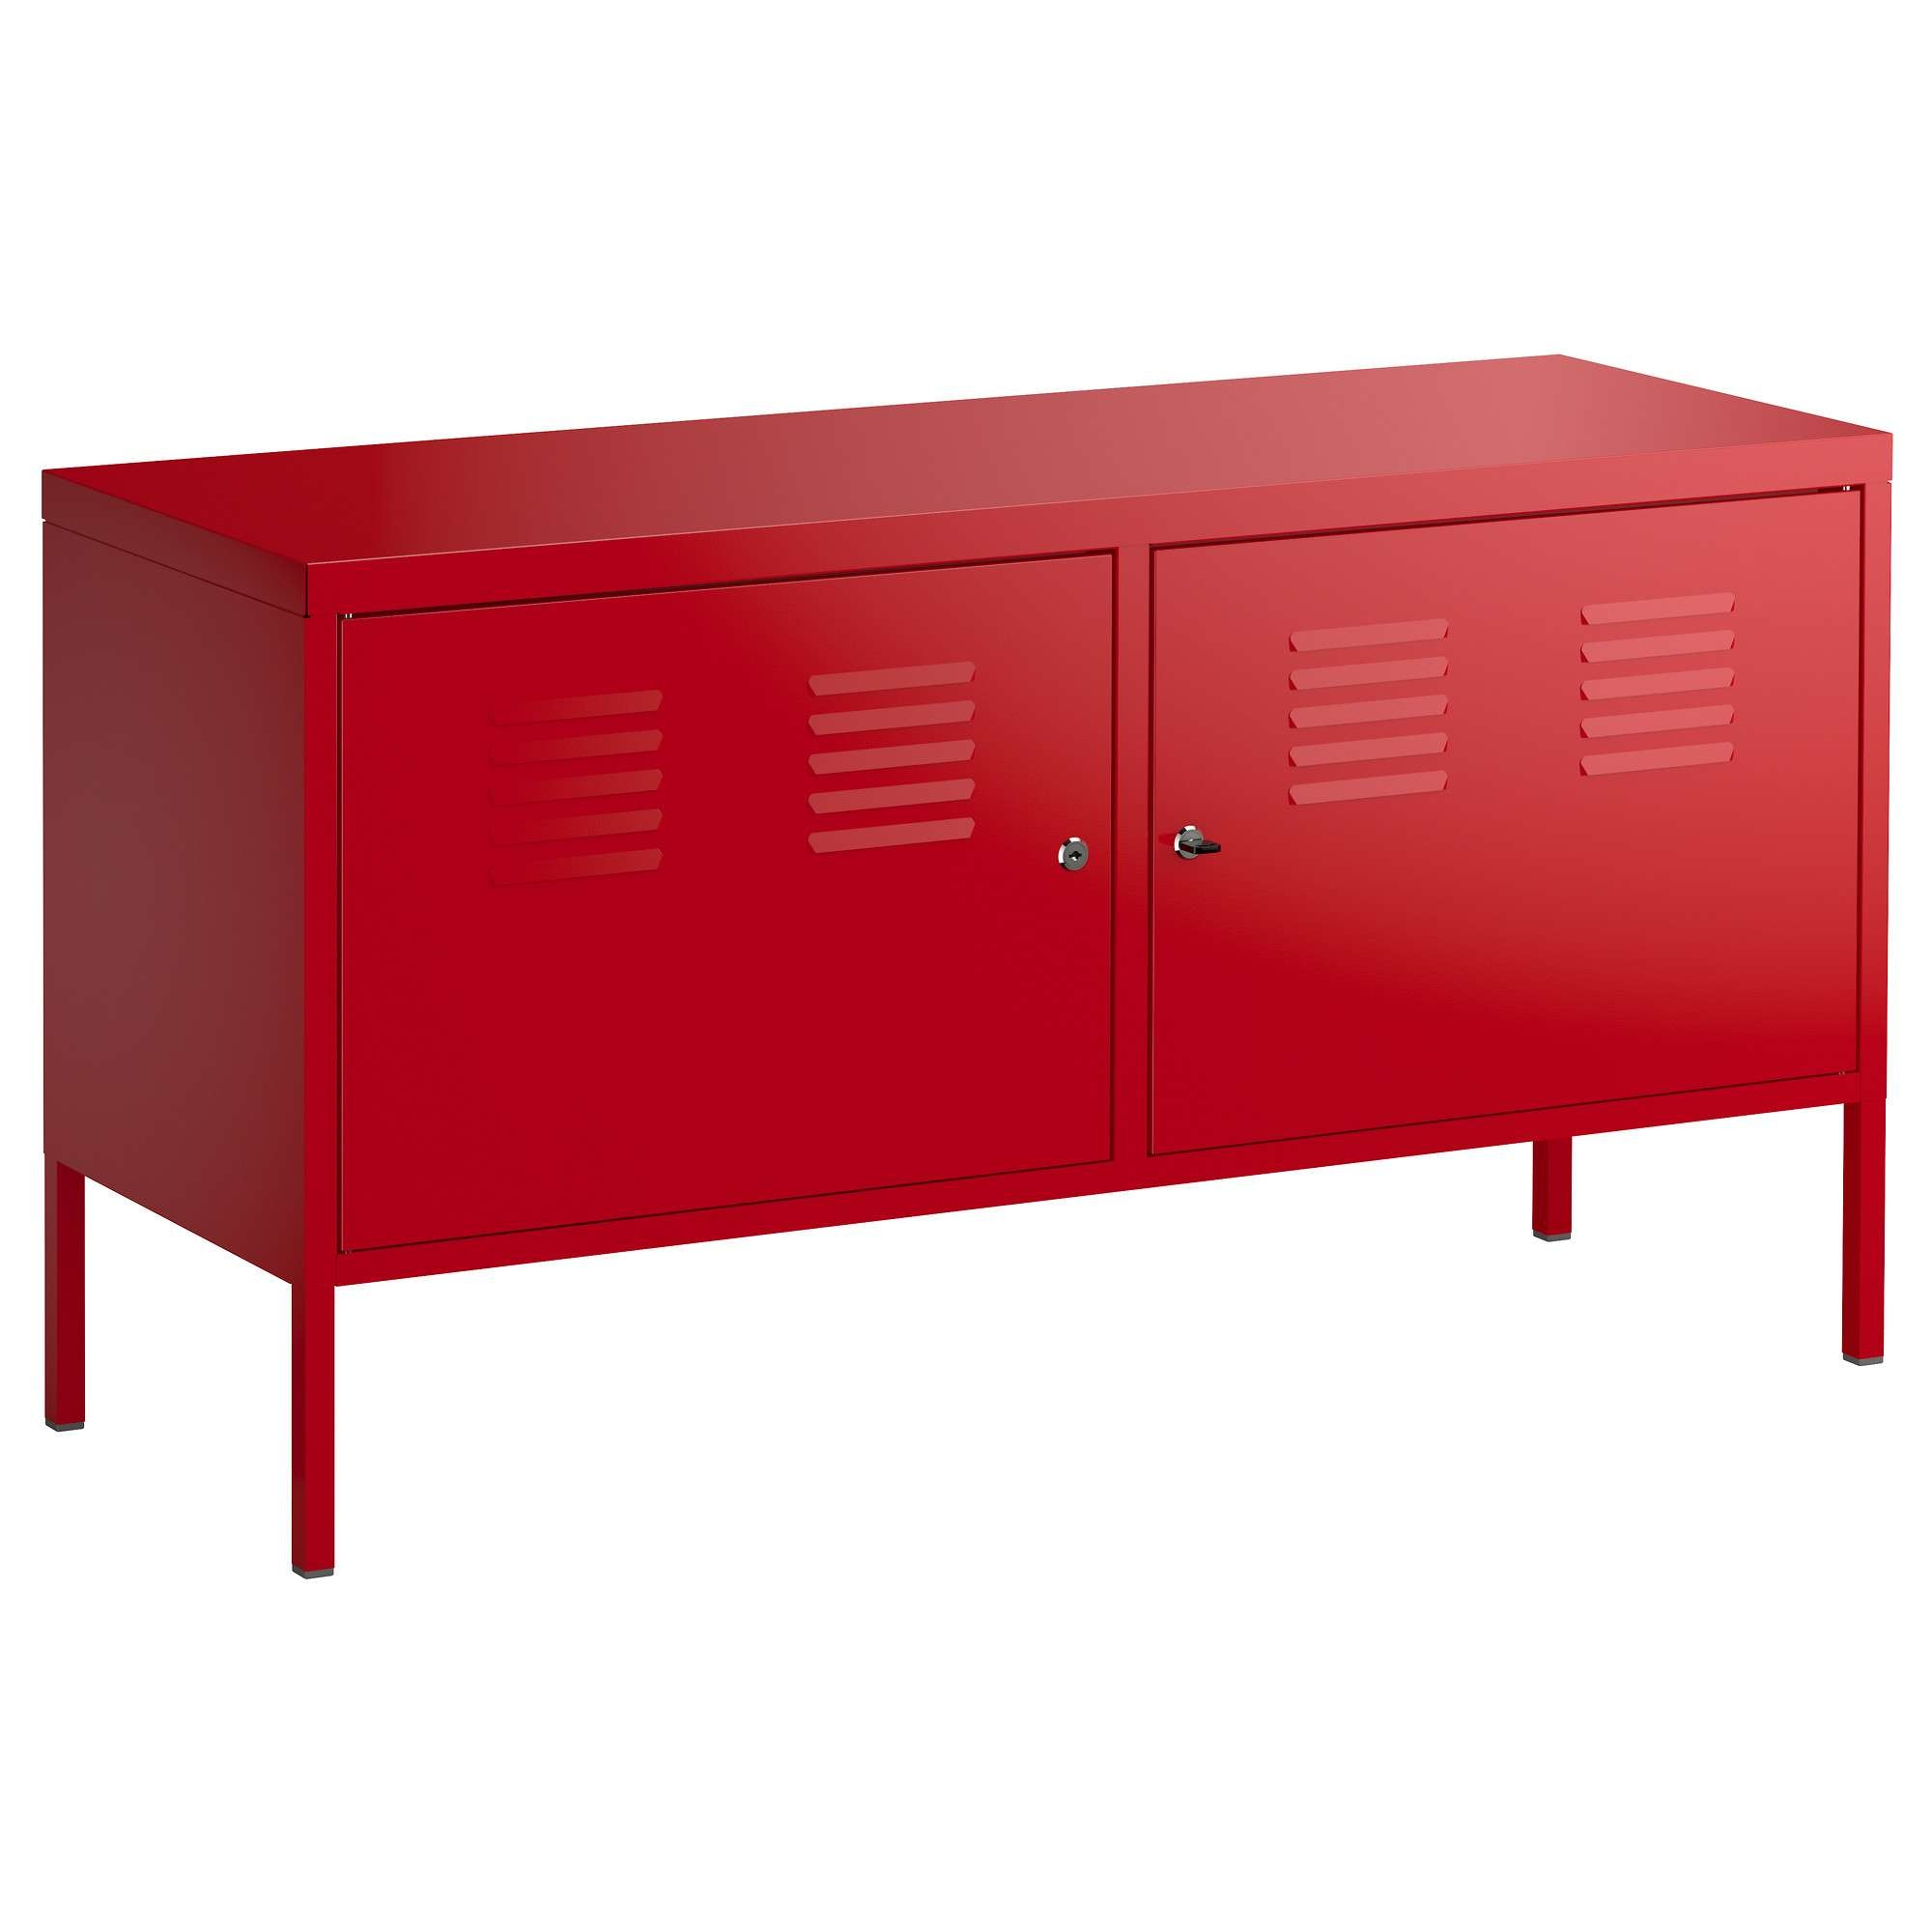 Ikea Ps Cabinet – Red – Ikea For 7 Foot Sideboards (View 20 of 20)